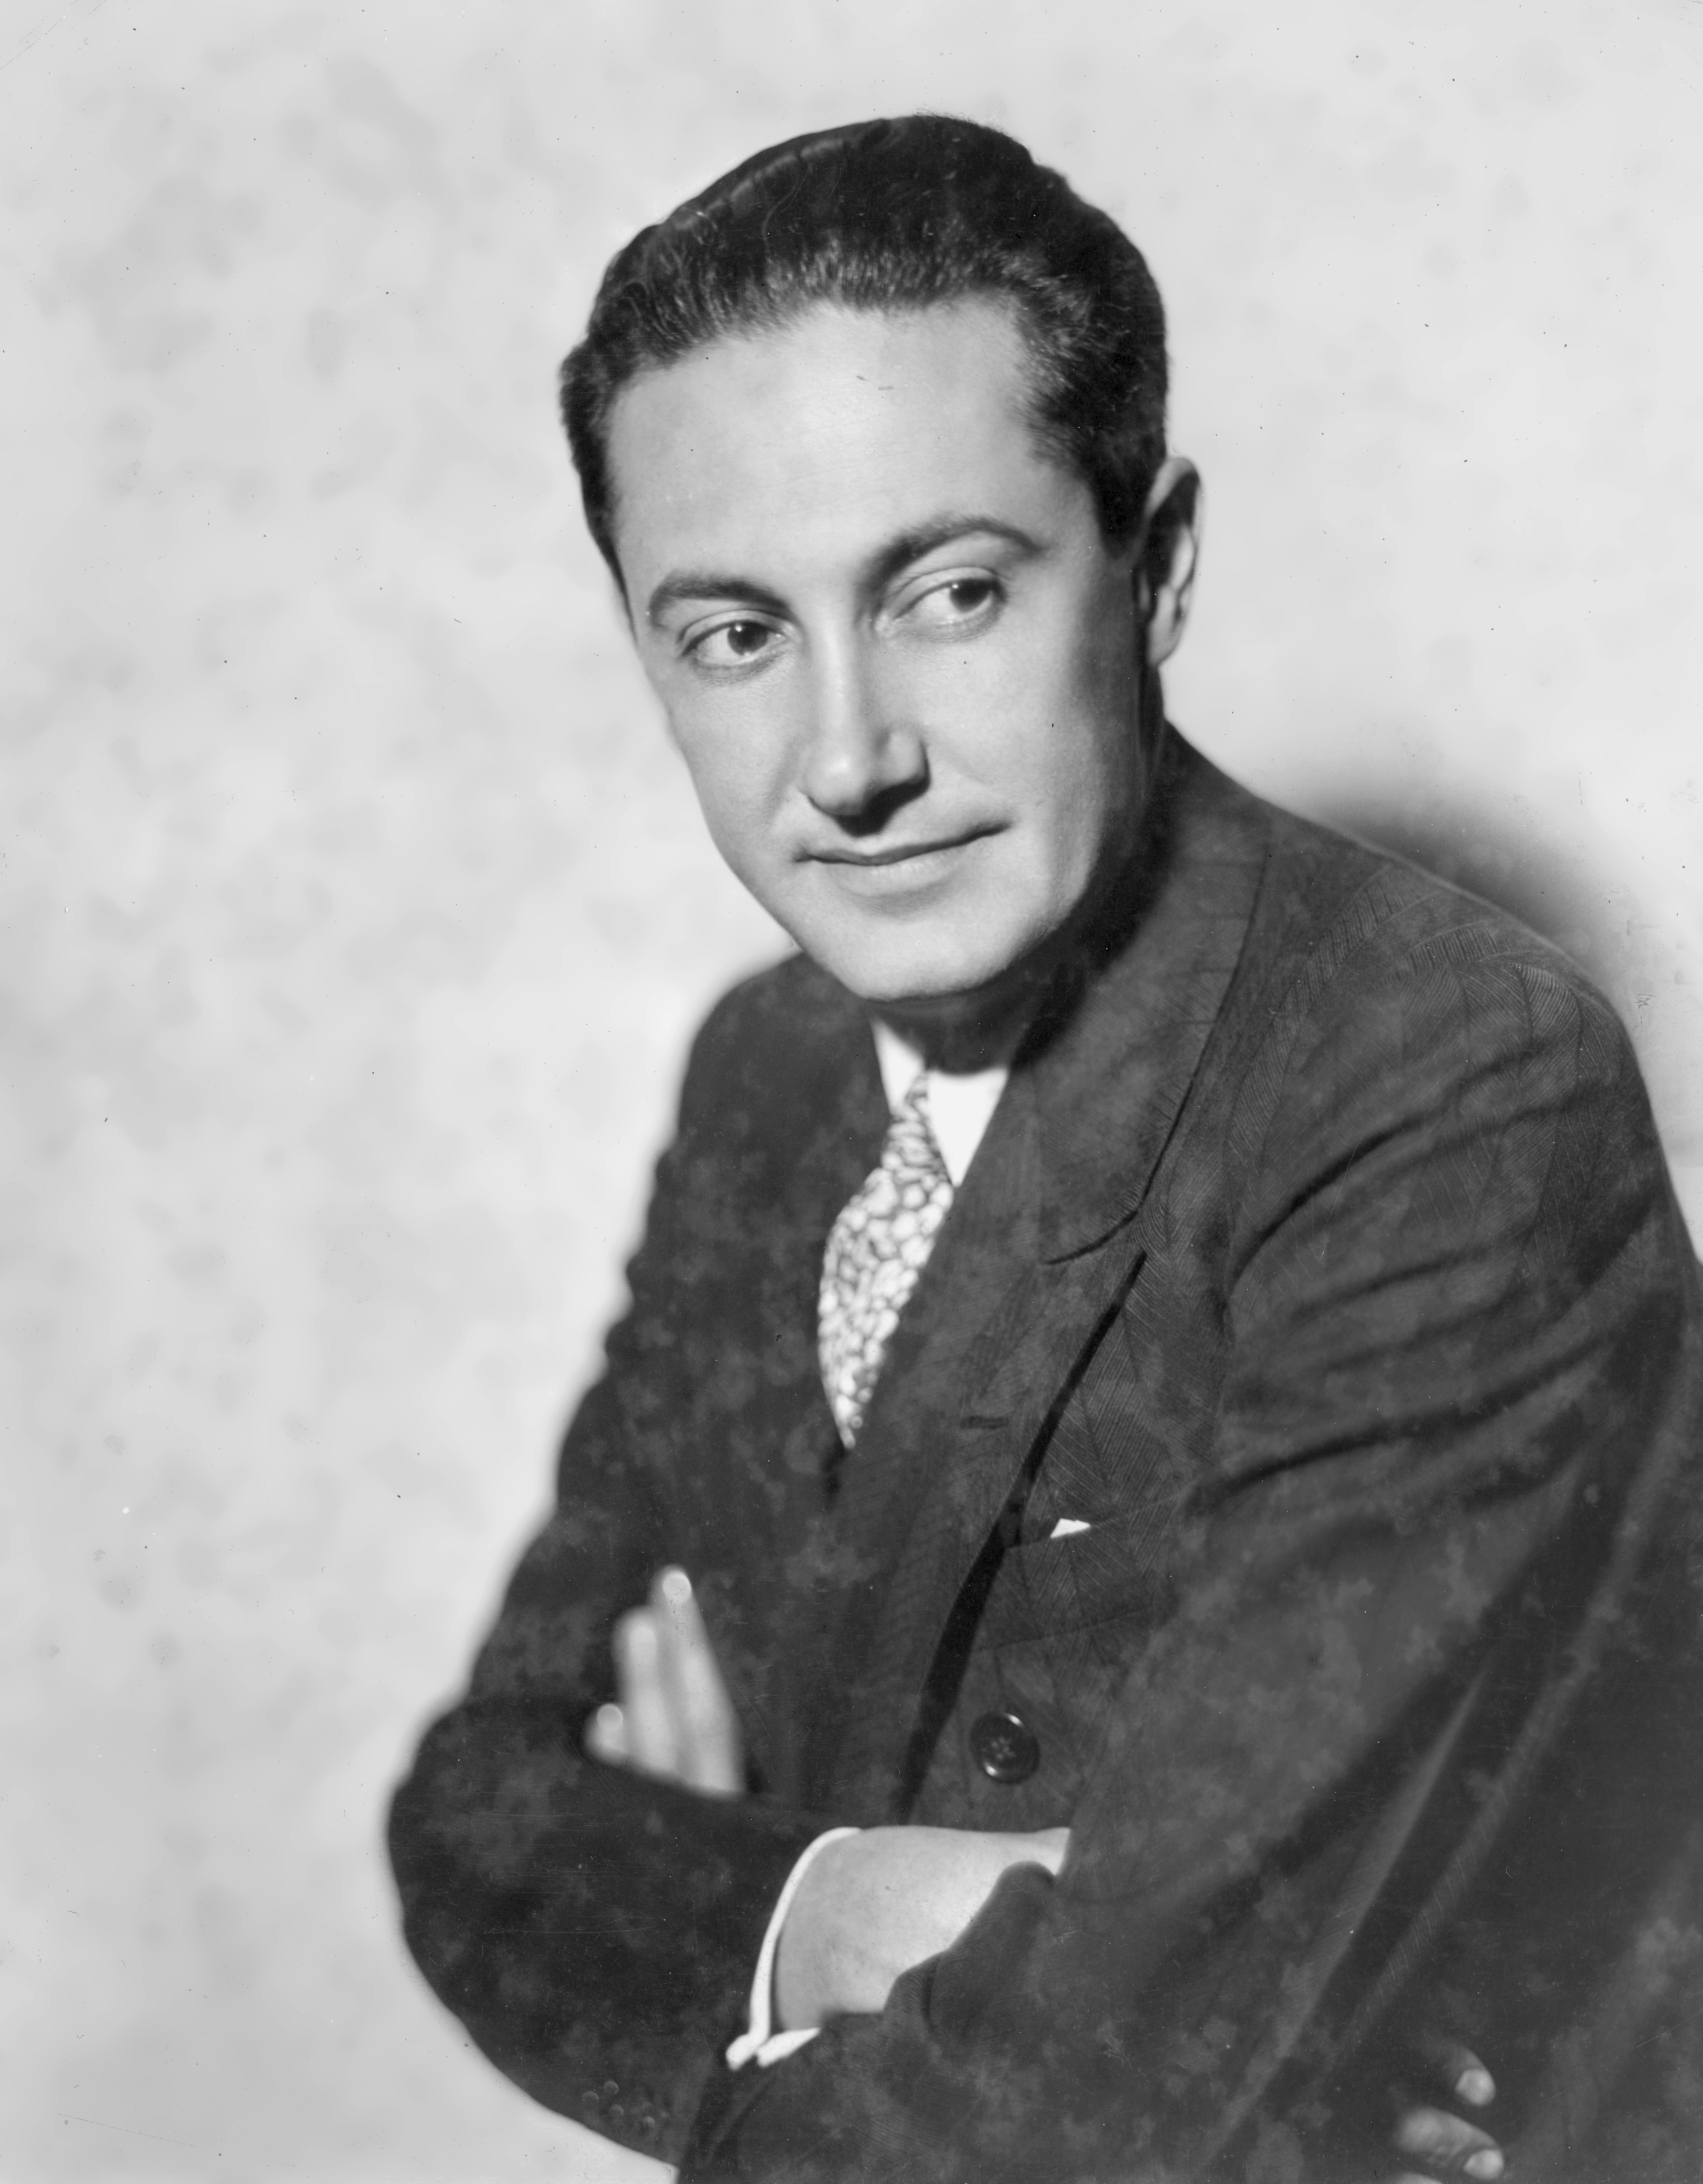 Portrait of producer and movie executive for MGM studios Irving Thalberg (1899 - 1936), circa 1932.